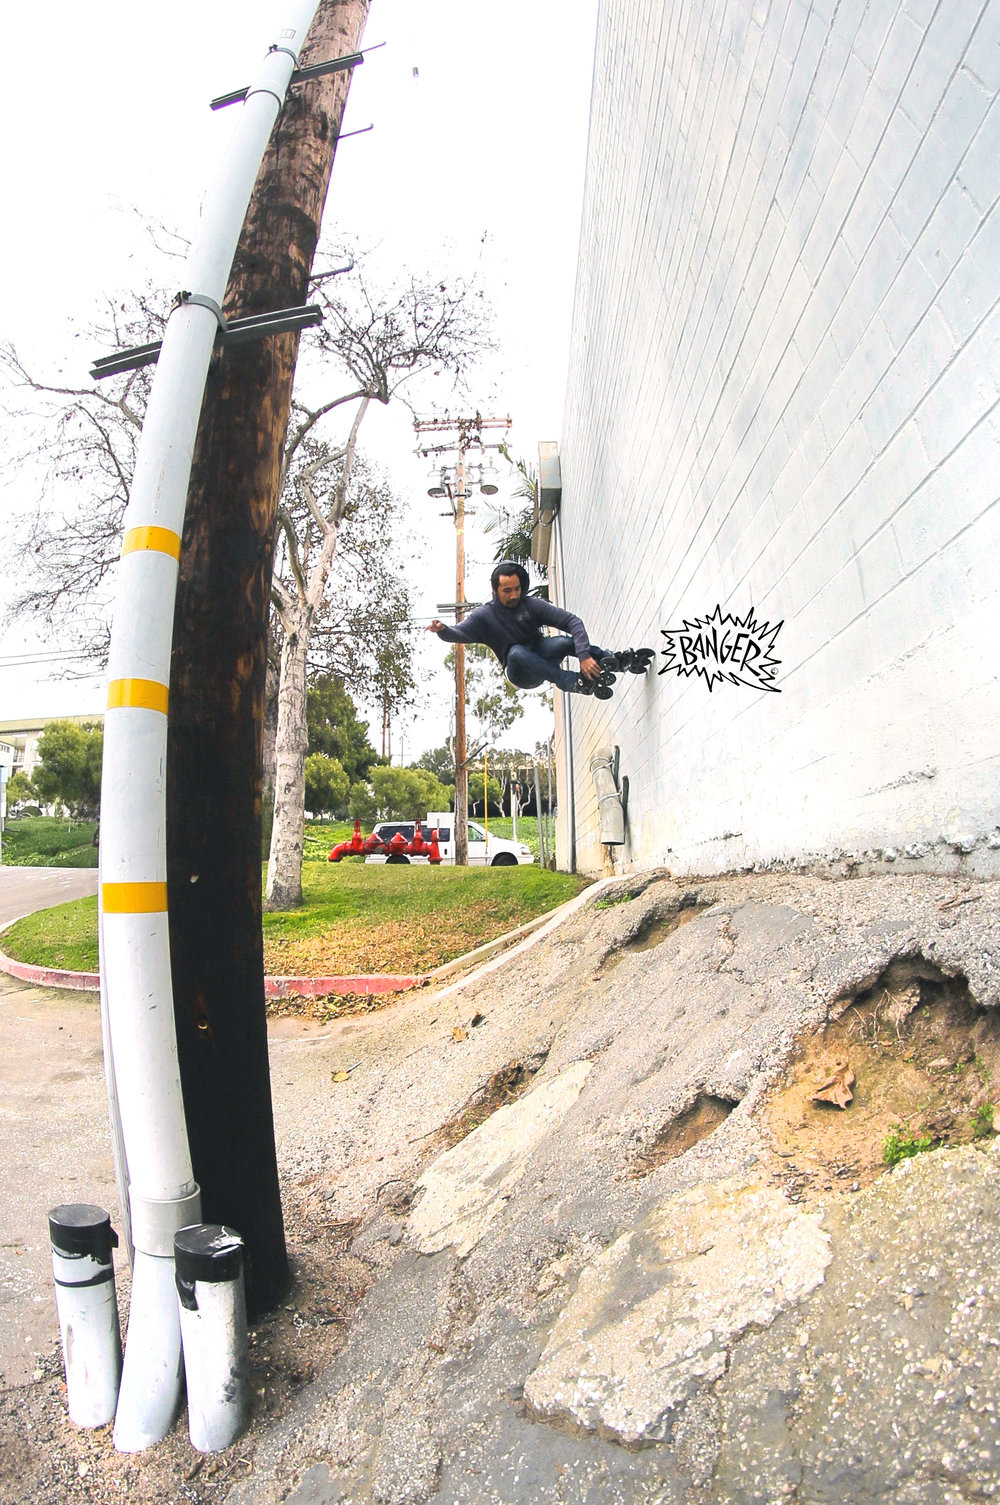 rollerBANGER-mike-obedoza-wall-ride-tri-skating-powerslide-brand.jpg